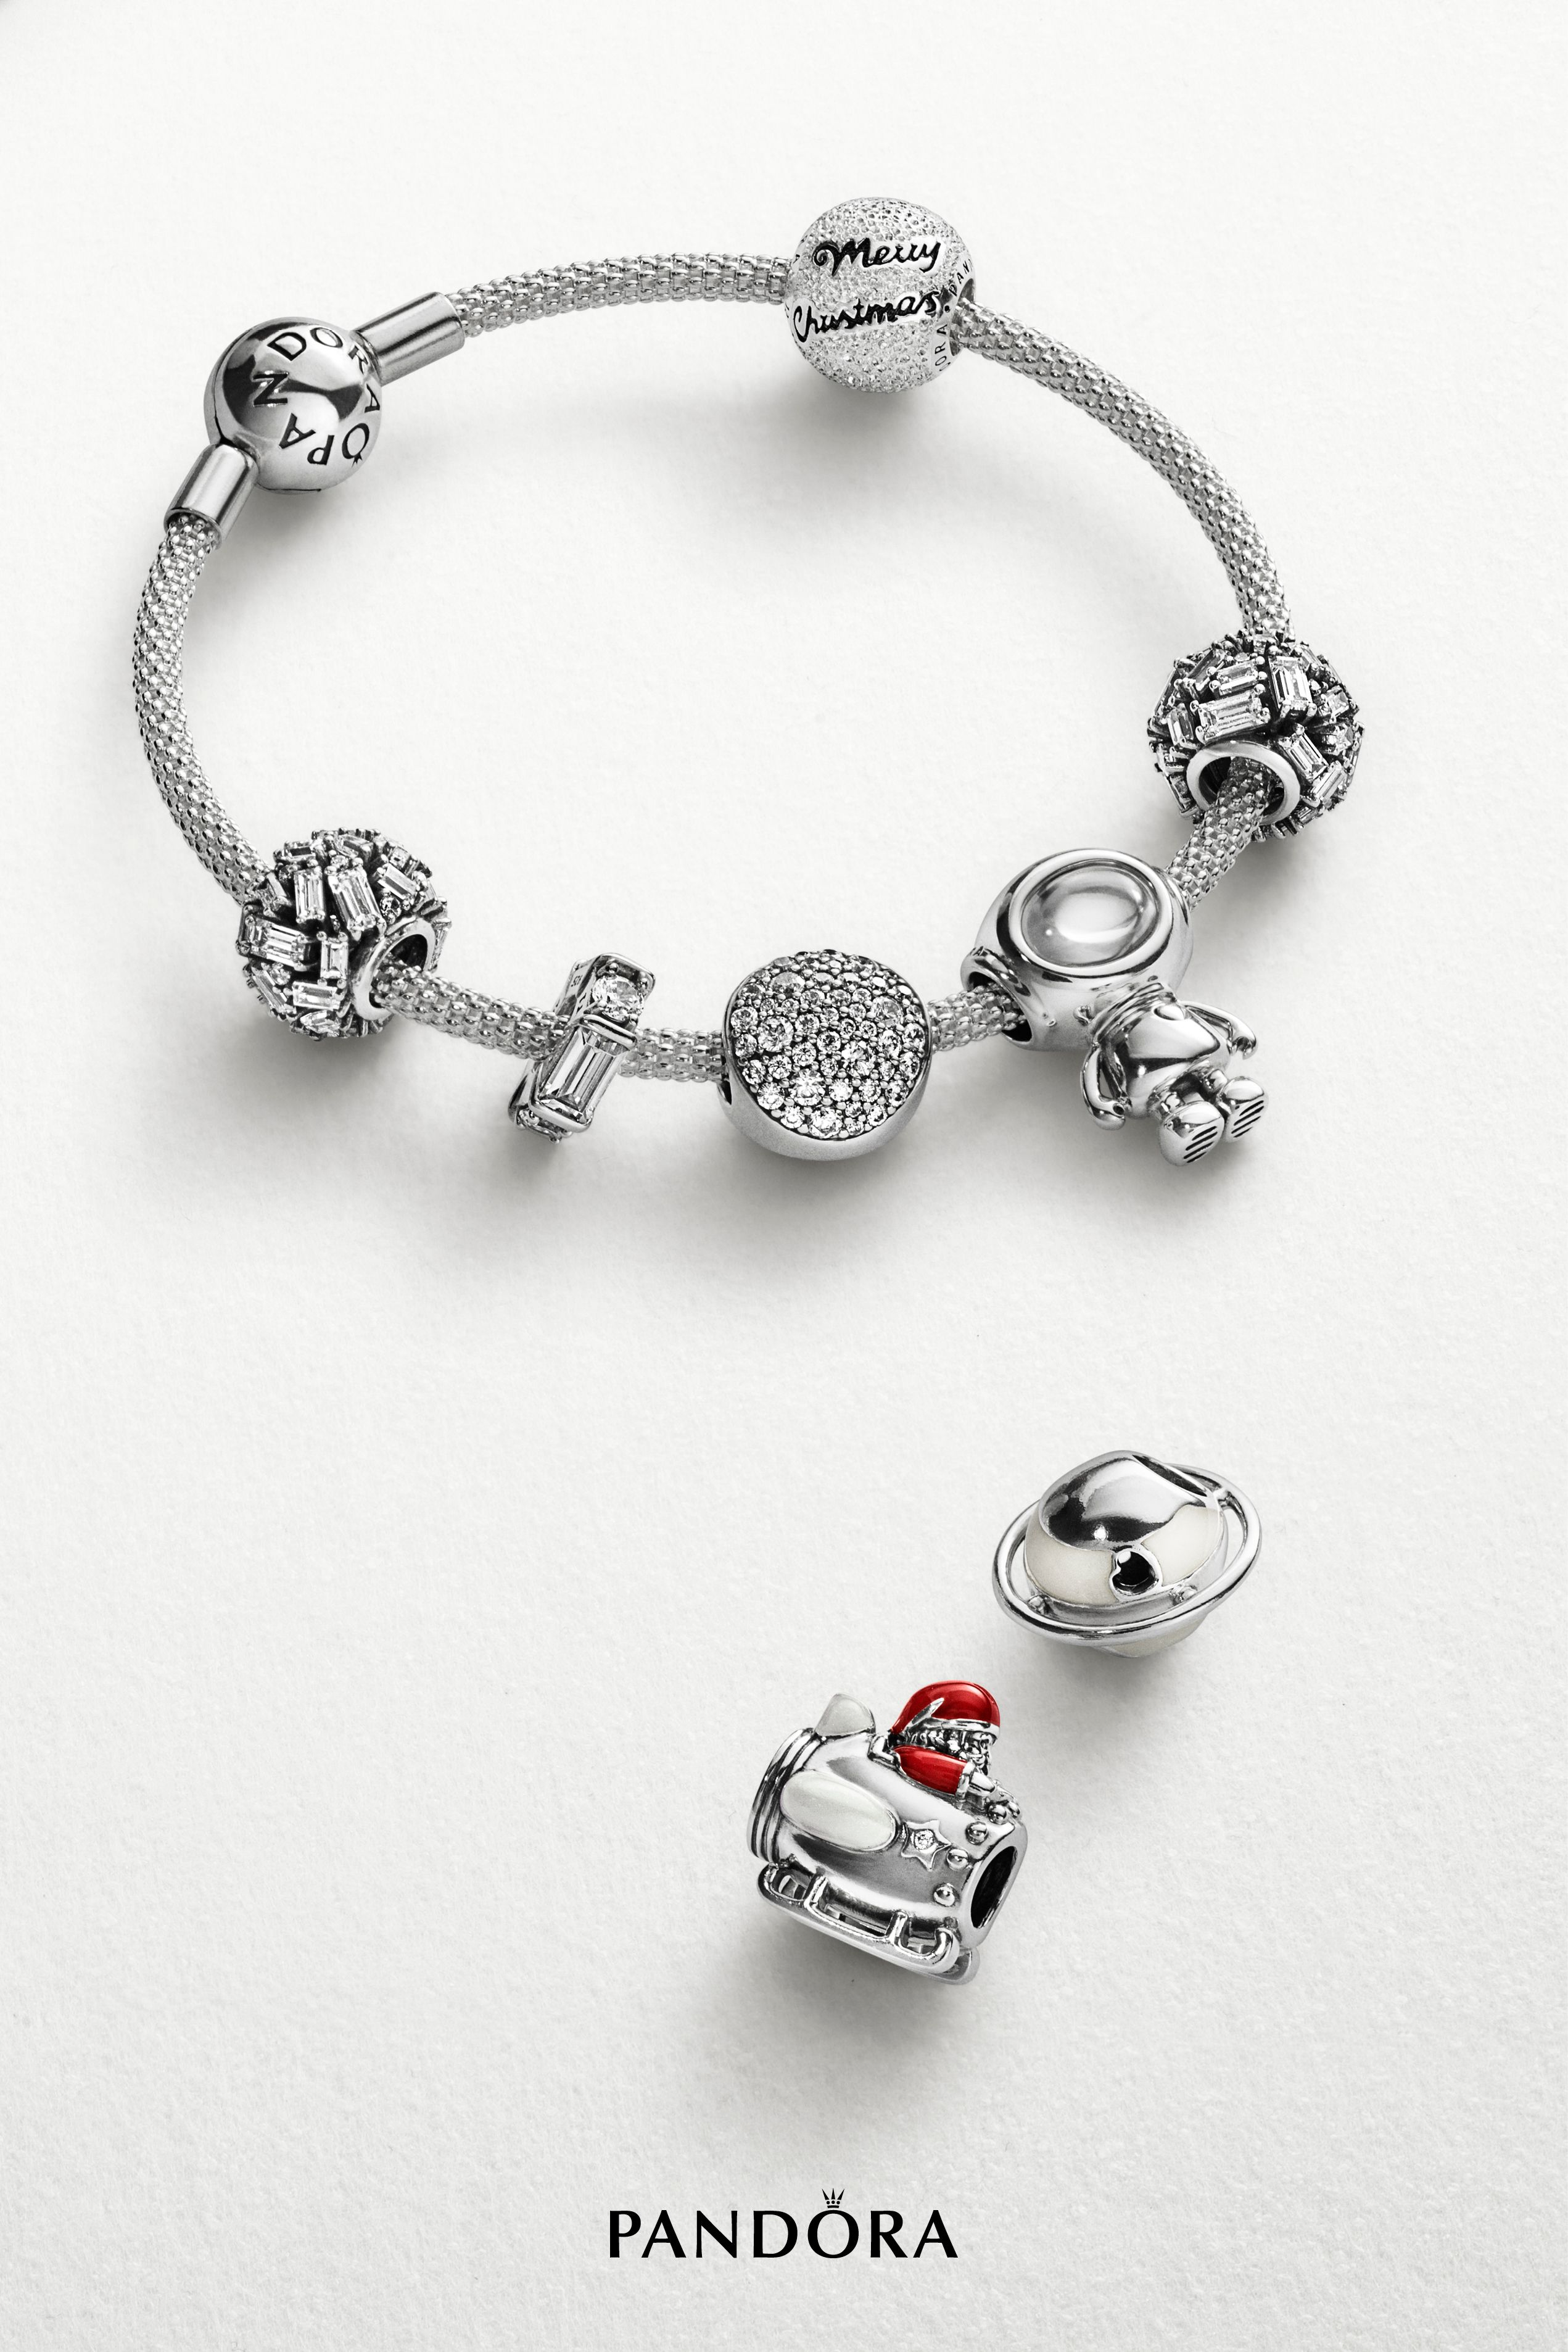 01d491ee6 Add an exciting new dimension to your holiday outfits with our astronaut  charm Cosmo Tommy and other celestial jewellery arrivals.